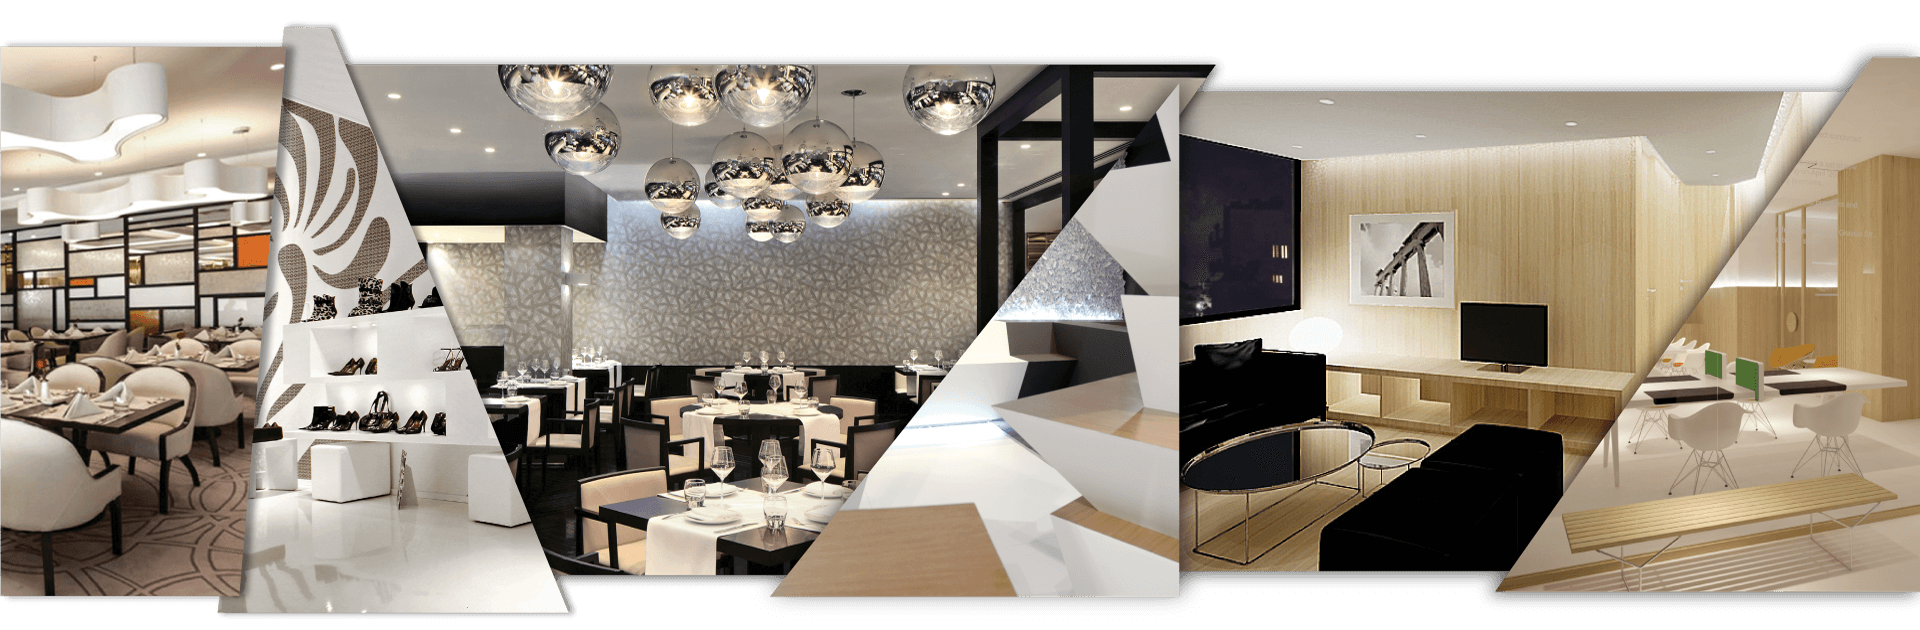 Commercial interior design services in Cyprus - various hospitality, retail & office interiors designed by Reform.